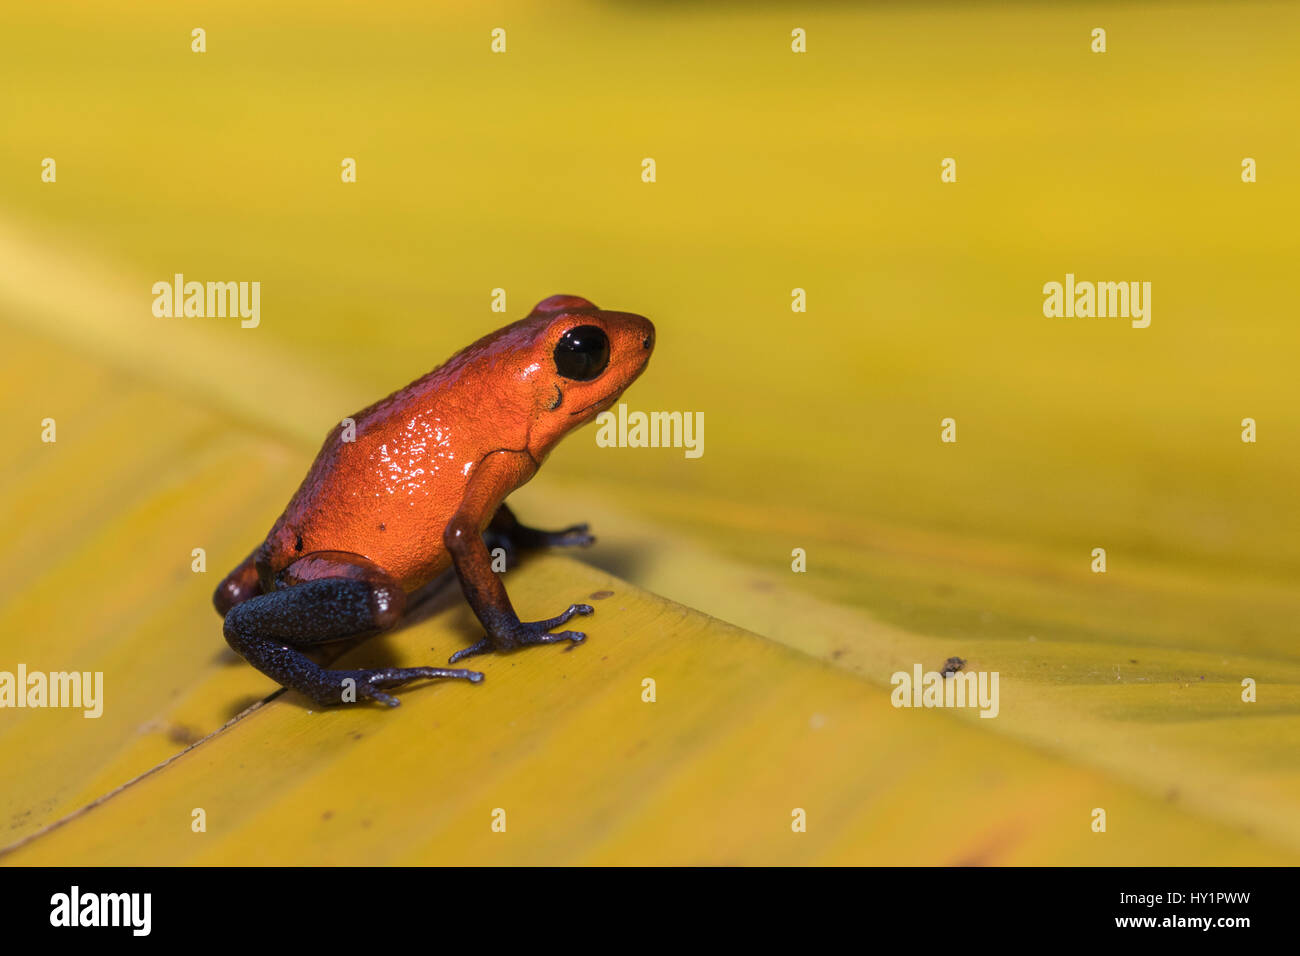 Blue-jeans Frog or Strawberry Poison-dart Frog, Dendrobates pumilio, sitting on a yellow banan leaf in rainforest - Stock Image